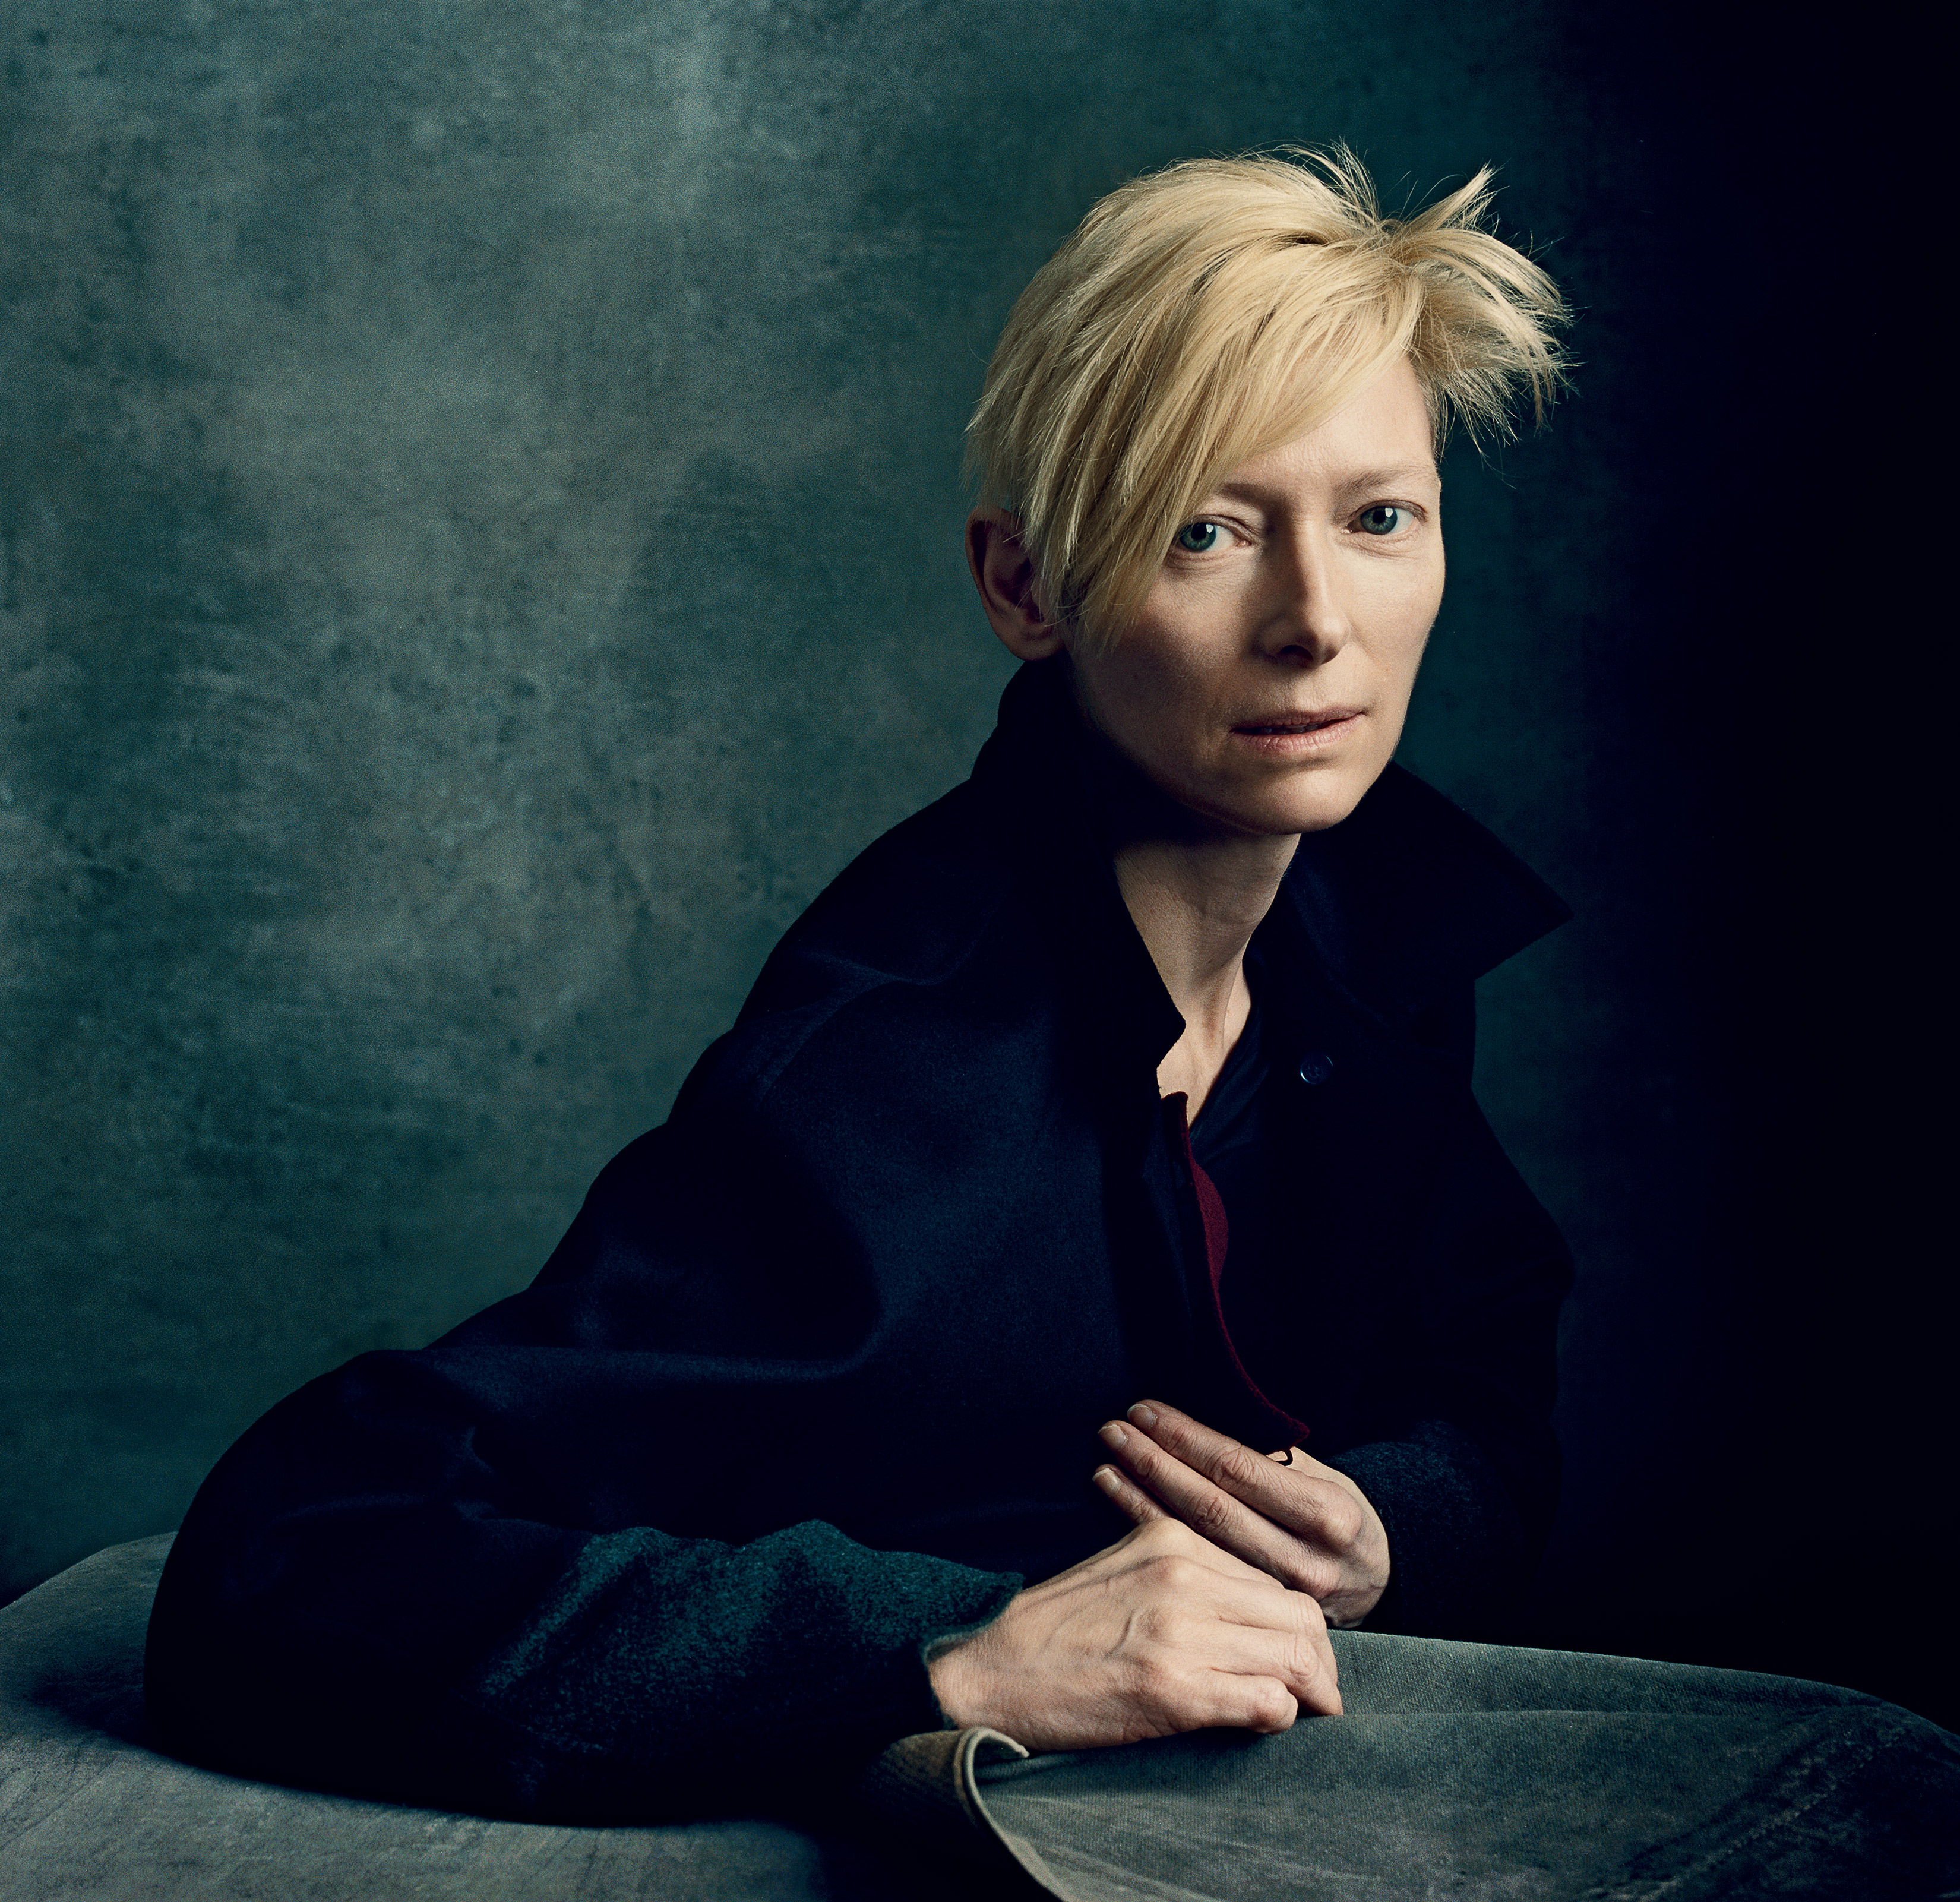 Tilda Swinton photo, pics, wallpaper - photo #